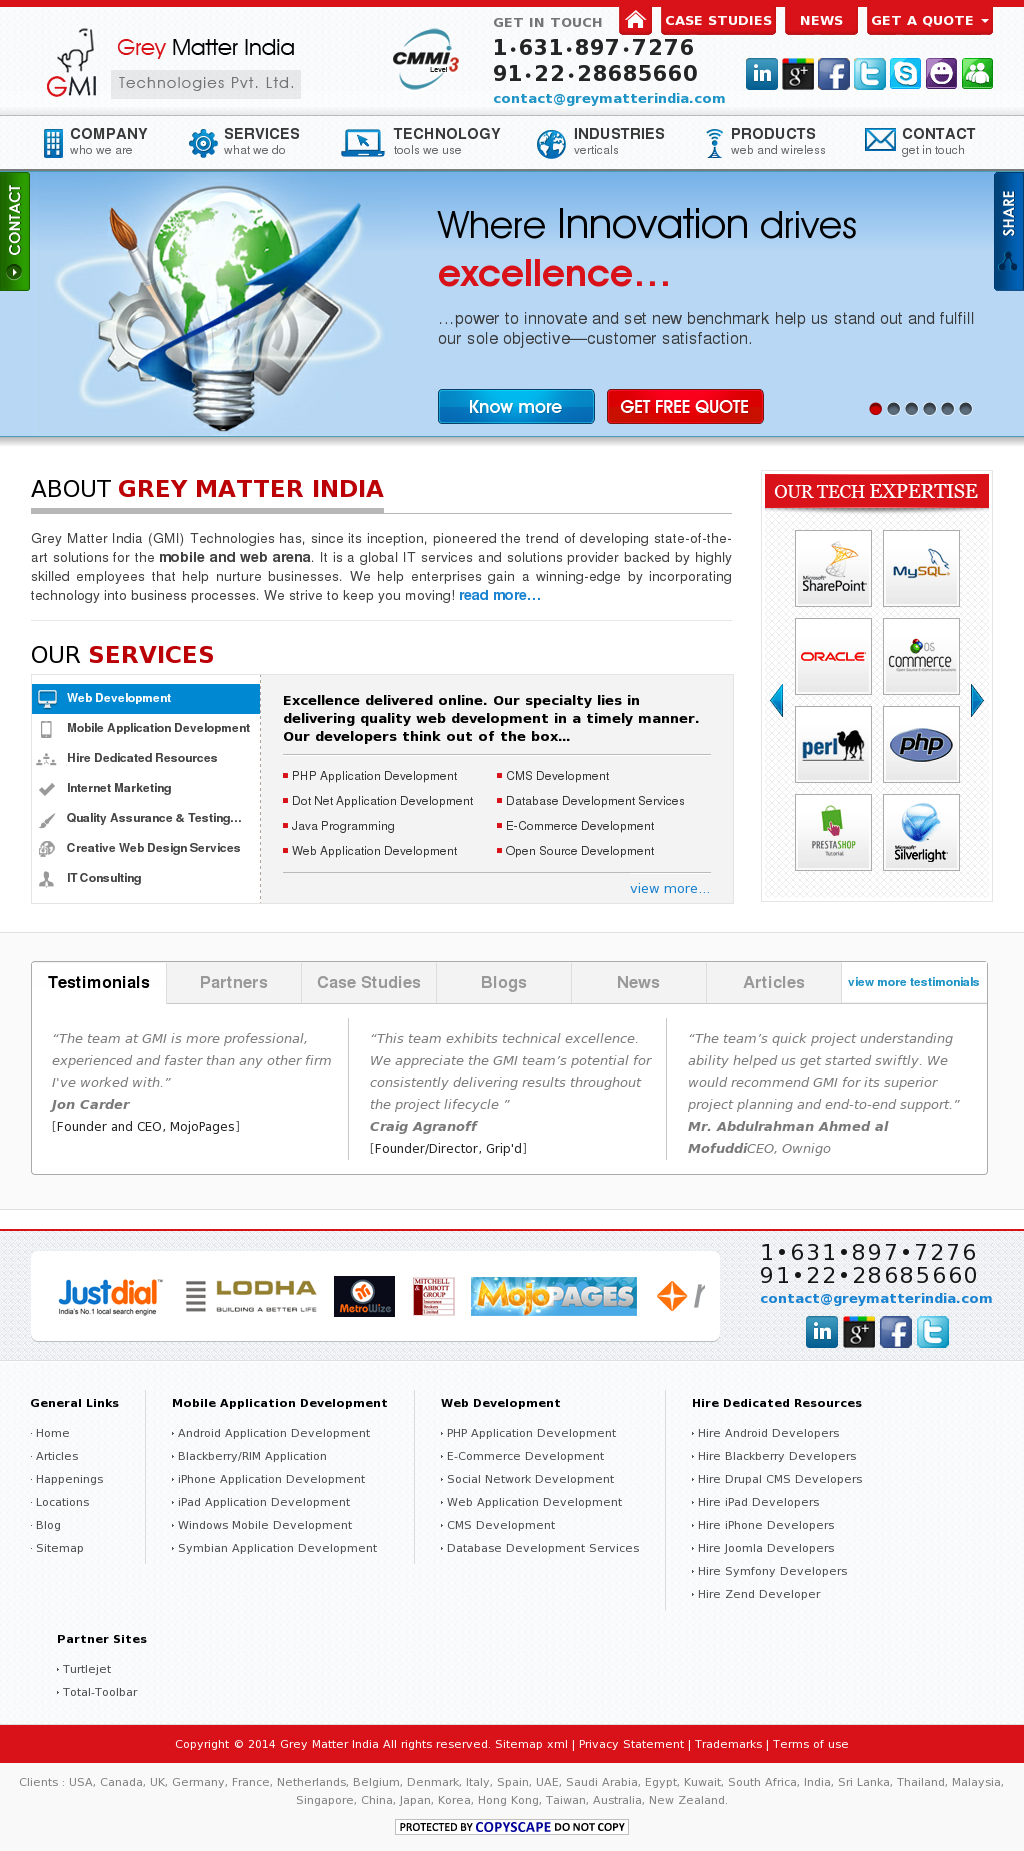 Grey Matter India Competitors, Revenue and Employees - Owler Company